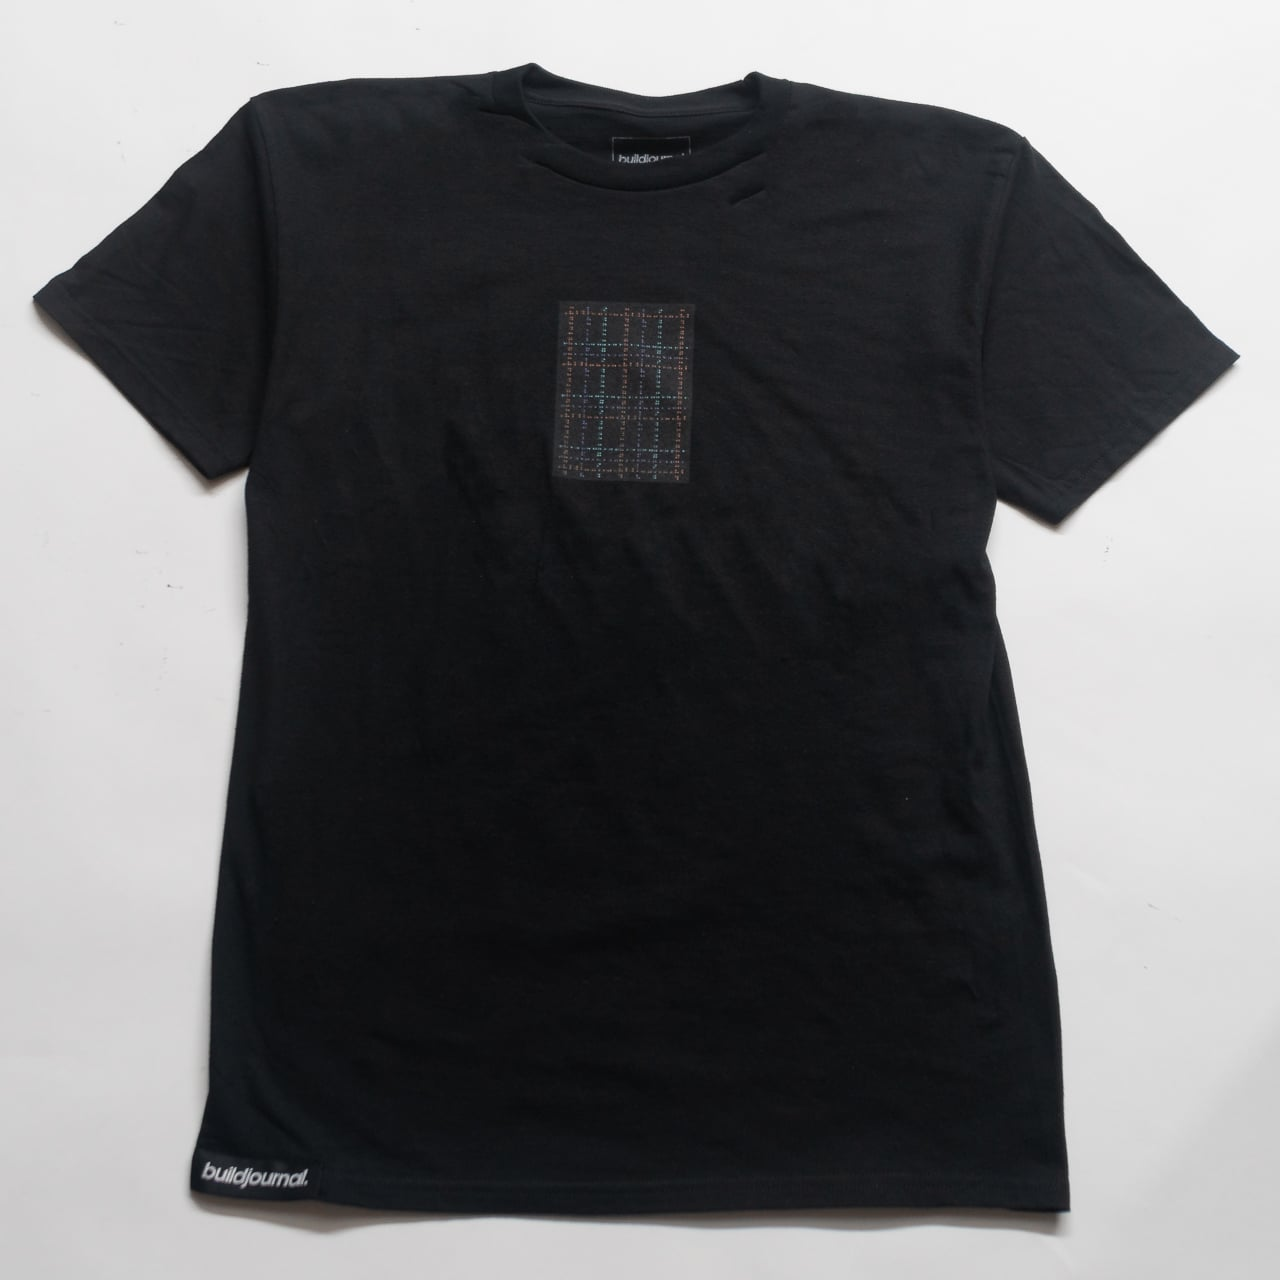 BMW M Texture Tee Shirt - Buildjournal